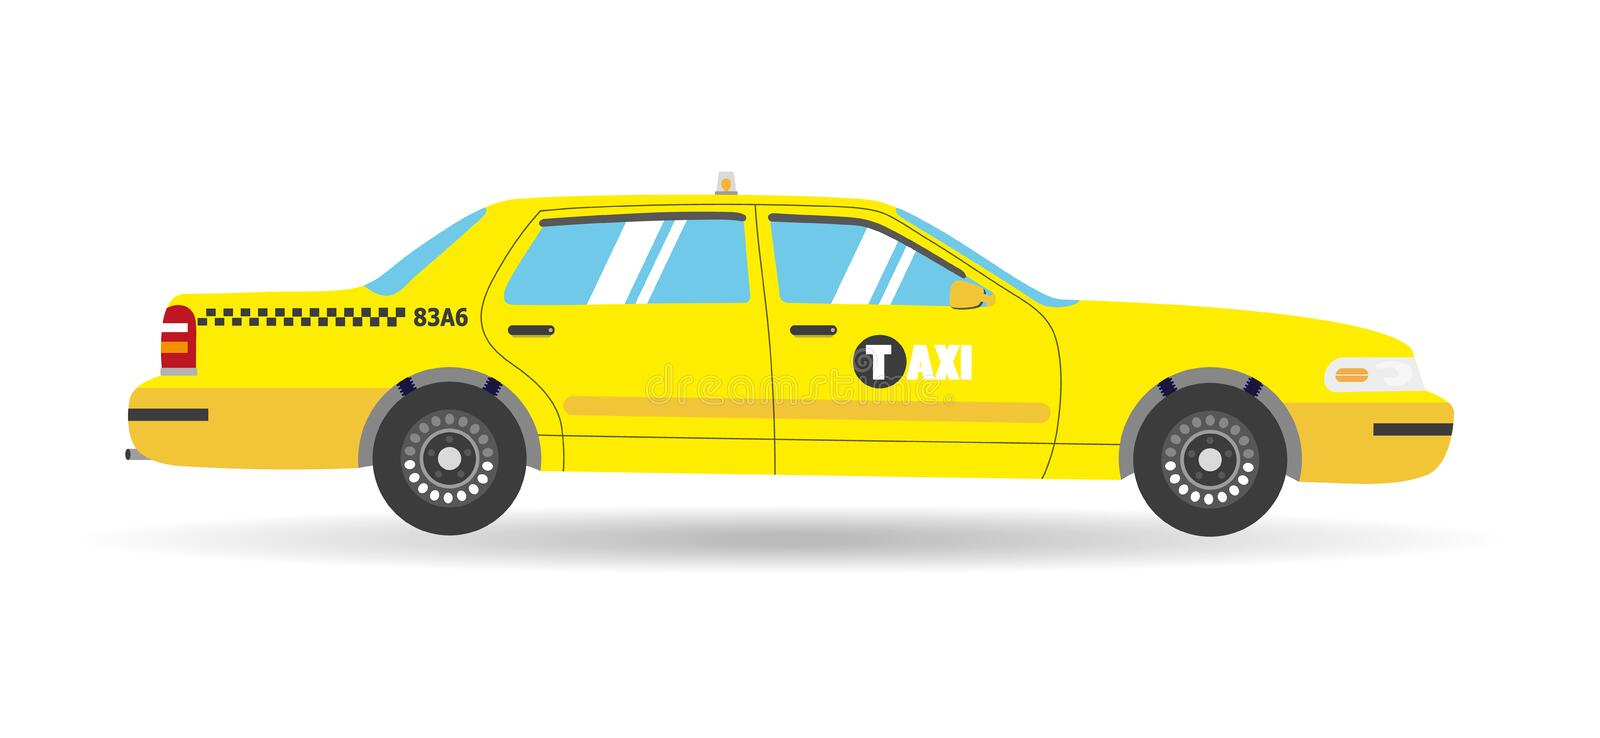 Cartoon yellow flat taxi icon. objects business cab car. On white background royalty free illustration